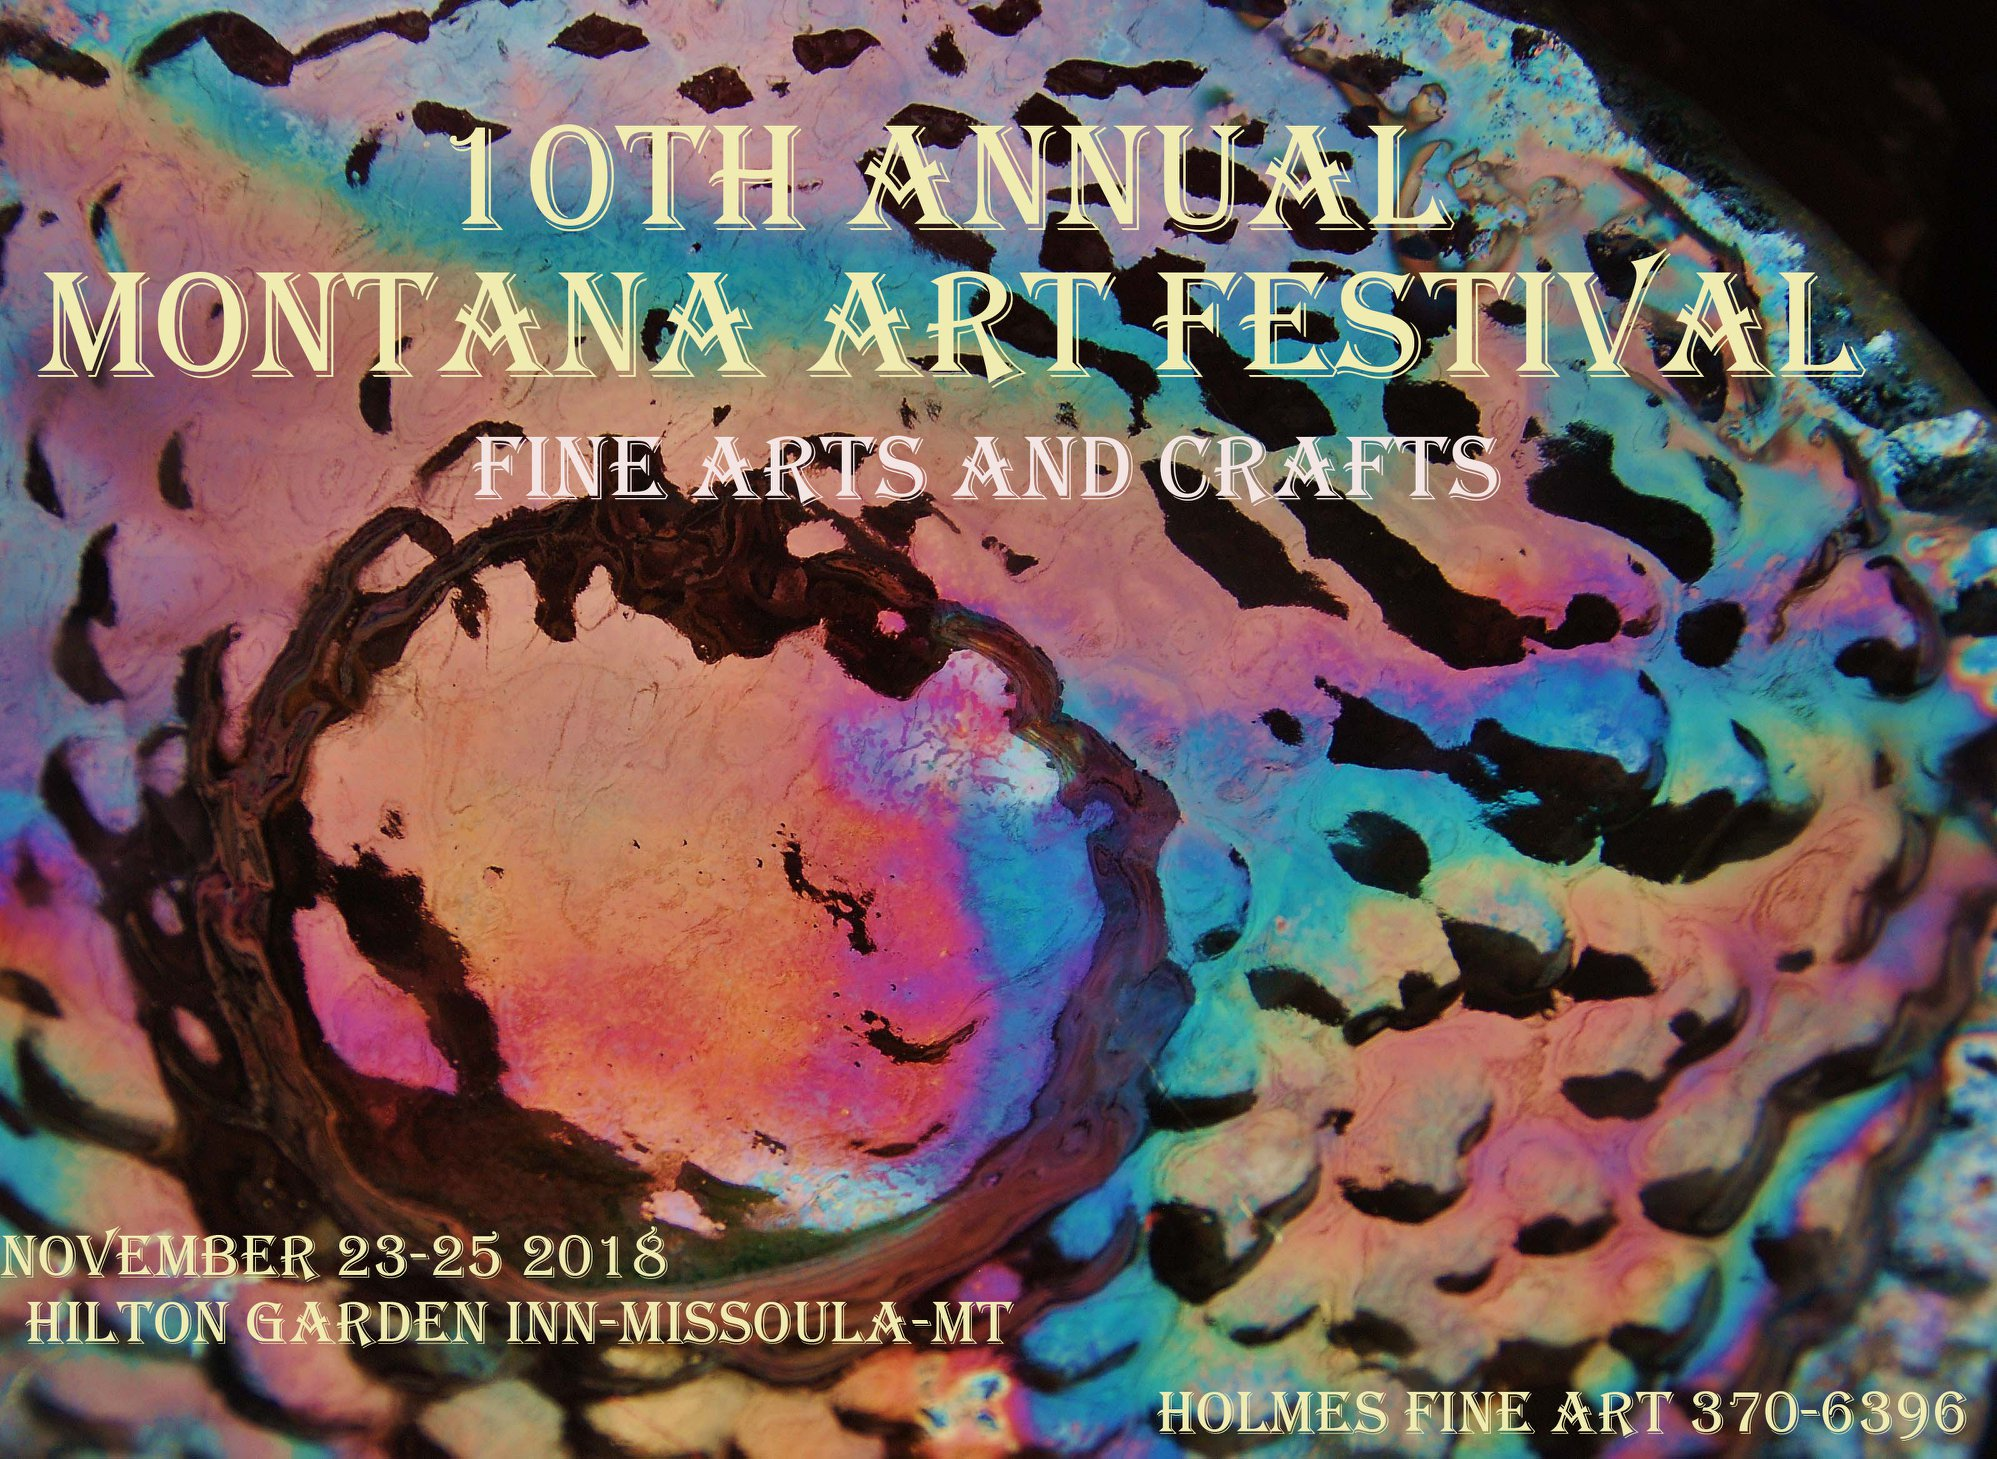 Just My Type will be at the Montana Art Festival. Hope to see you there! !